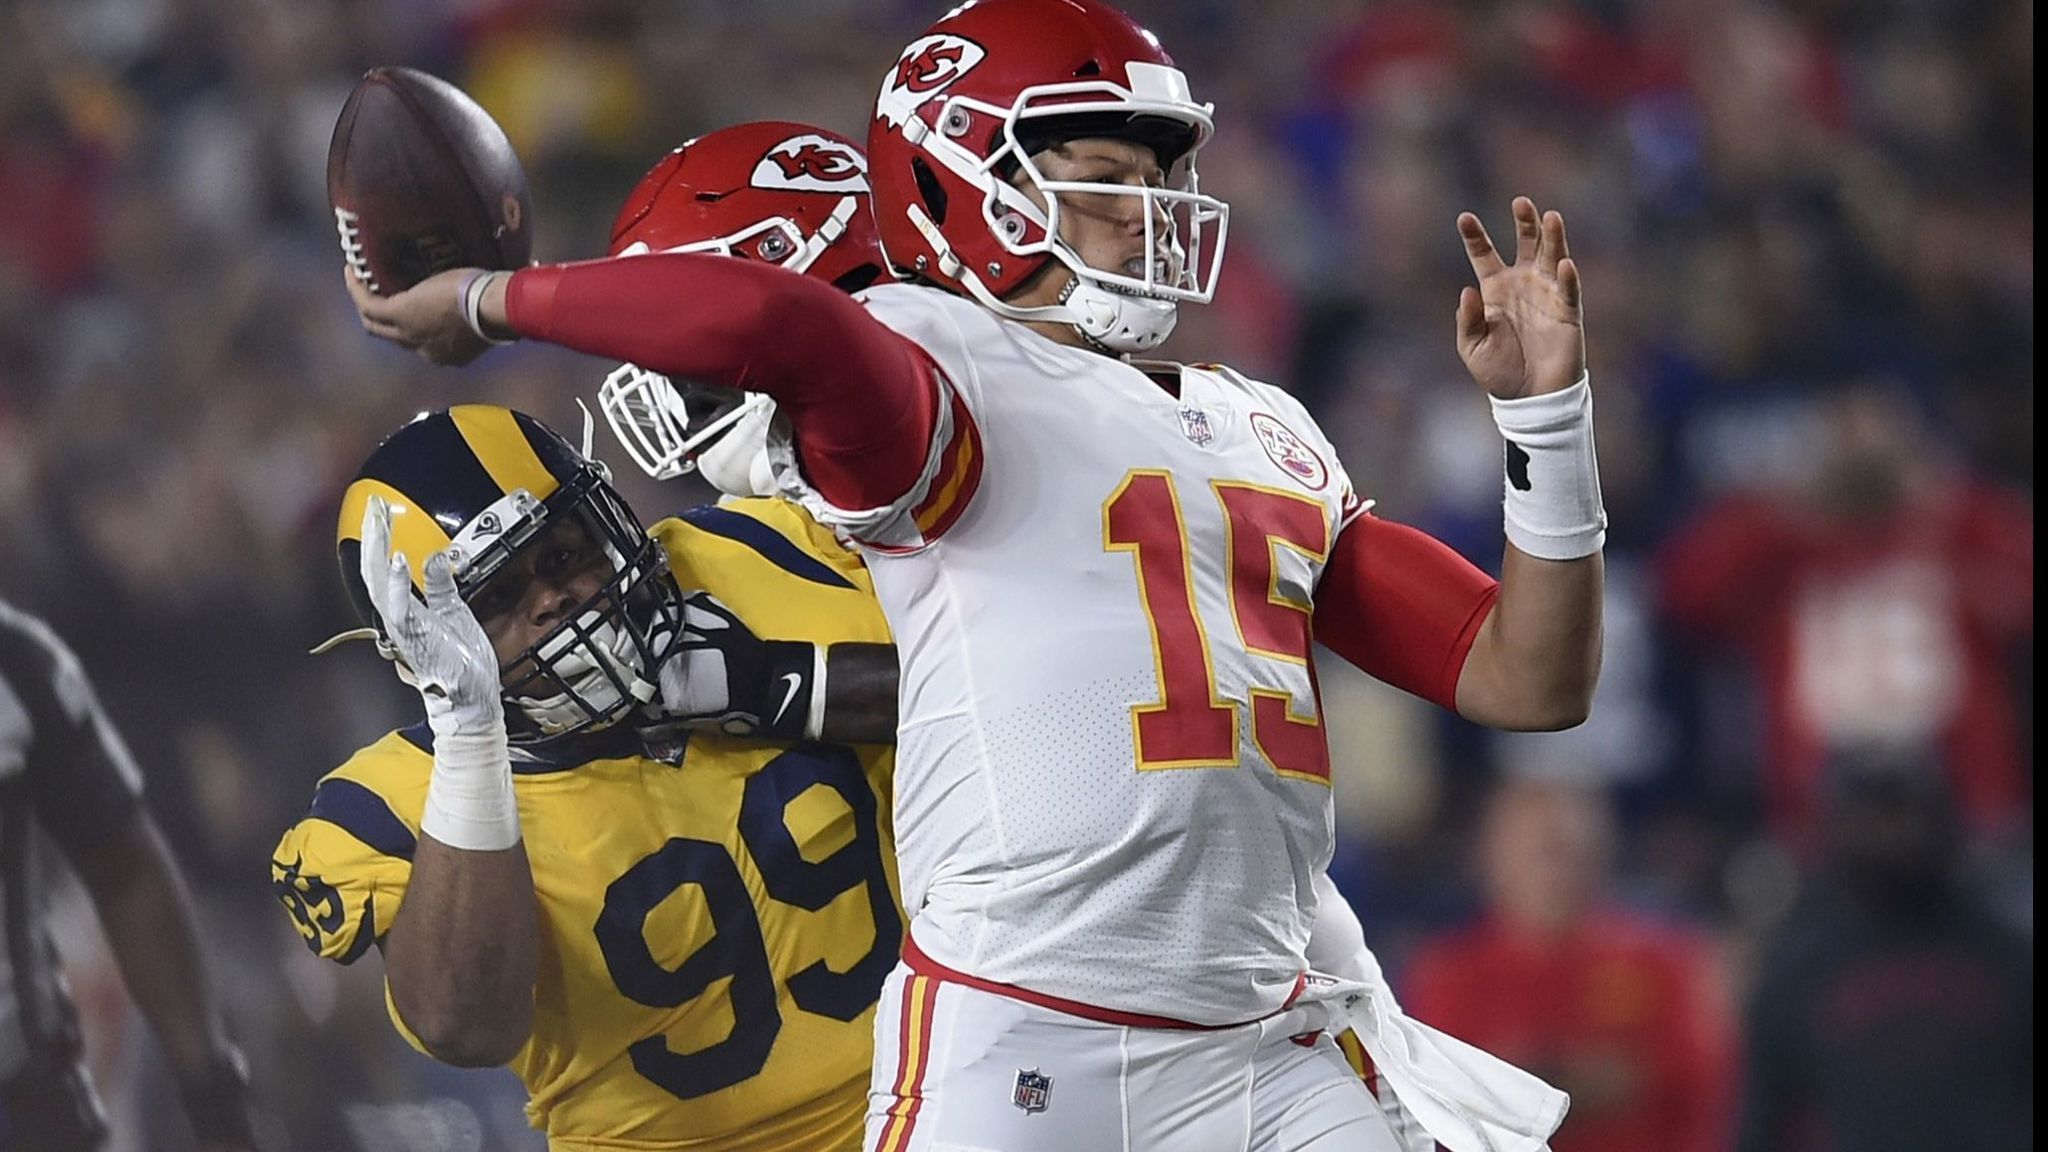 Chiefs-Rams 2.0? Would make for a fun Super Bowl — but don't count on it